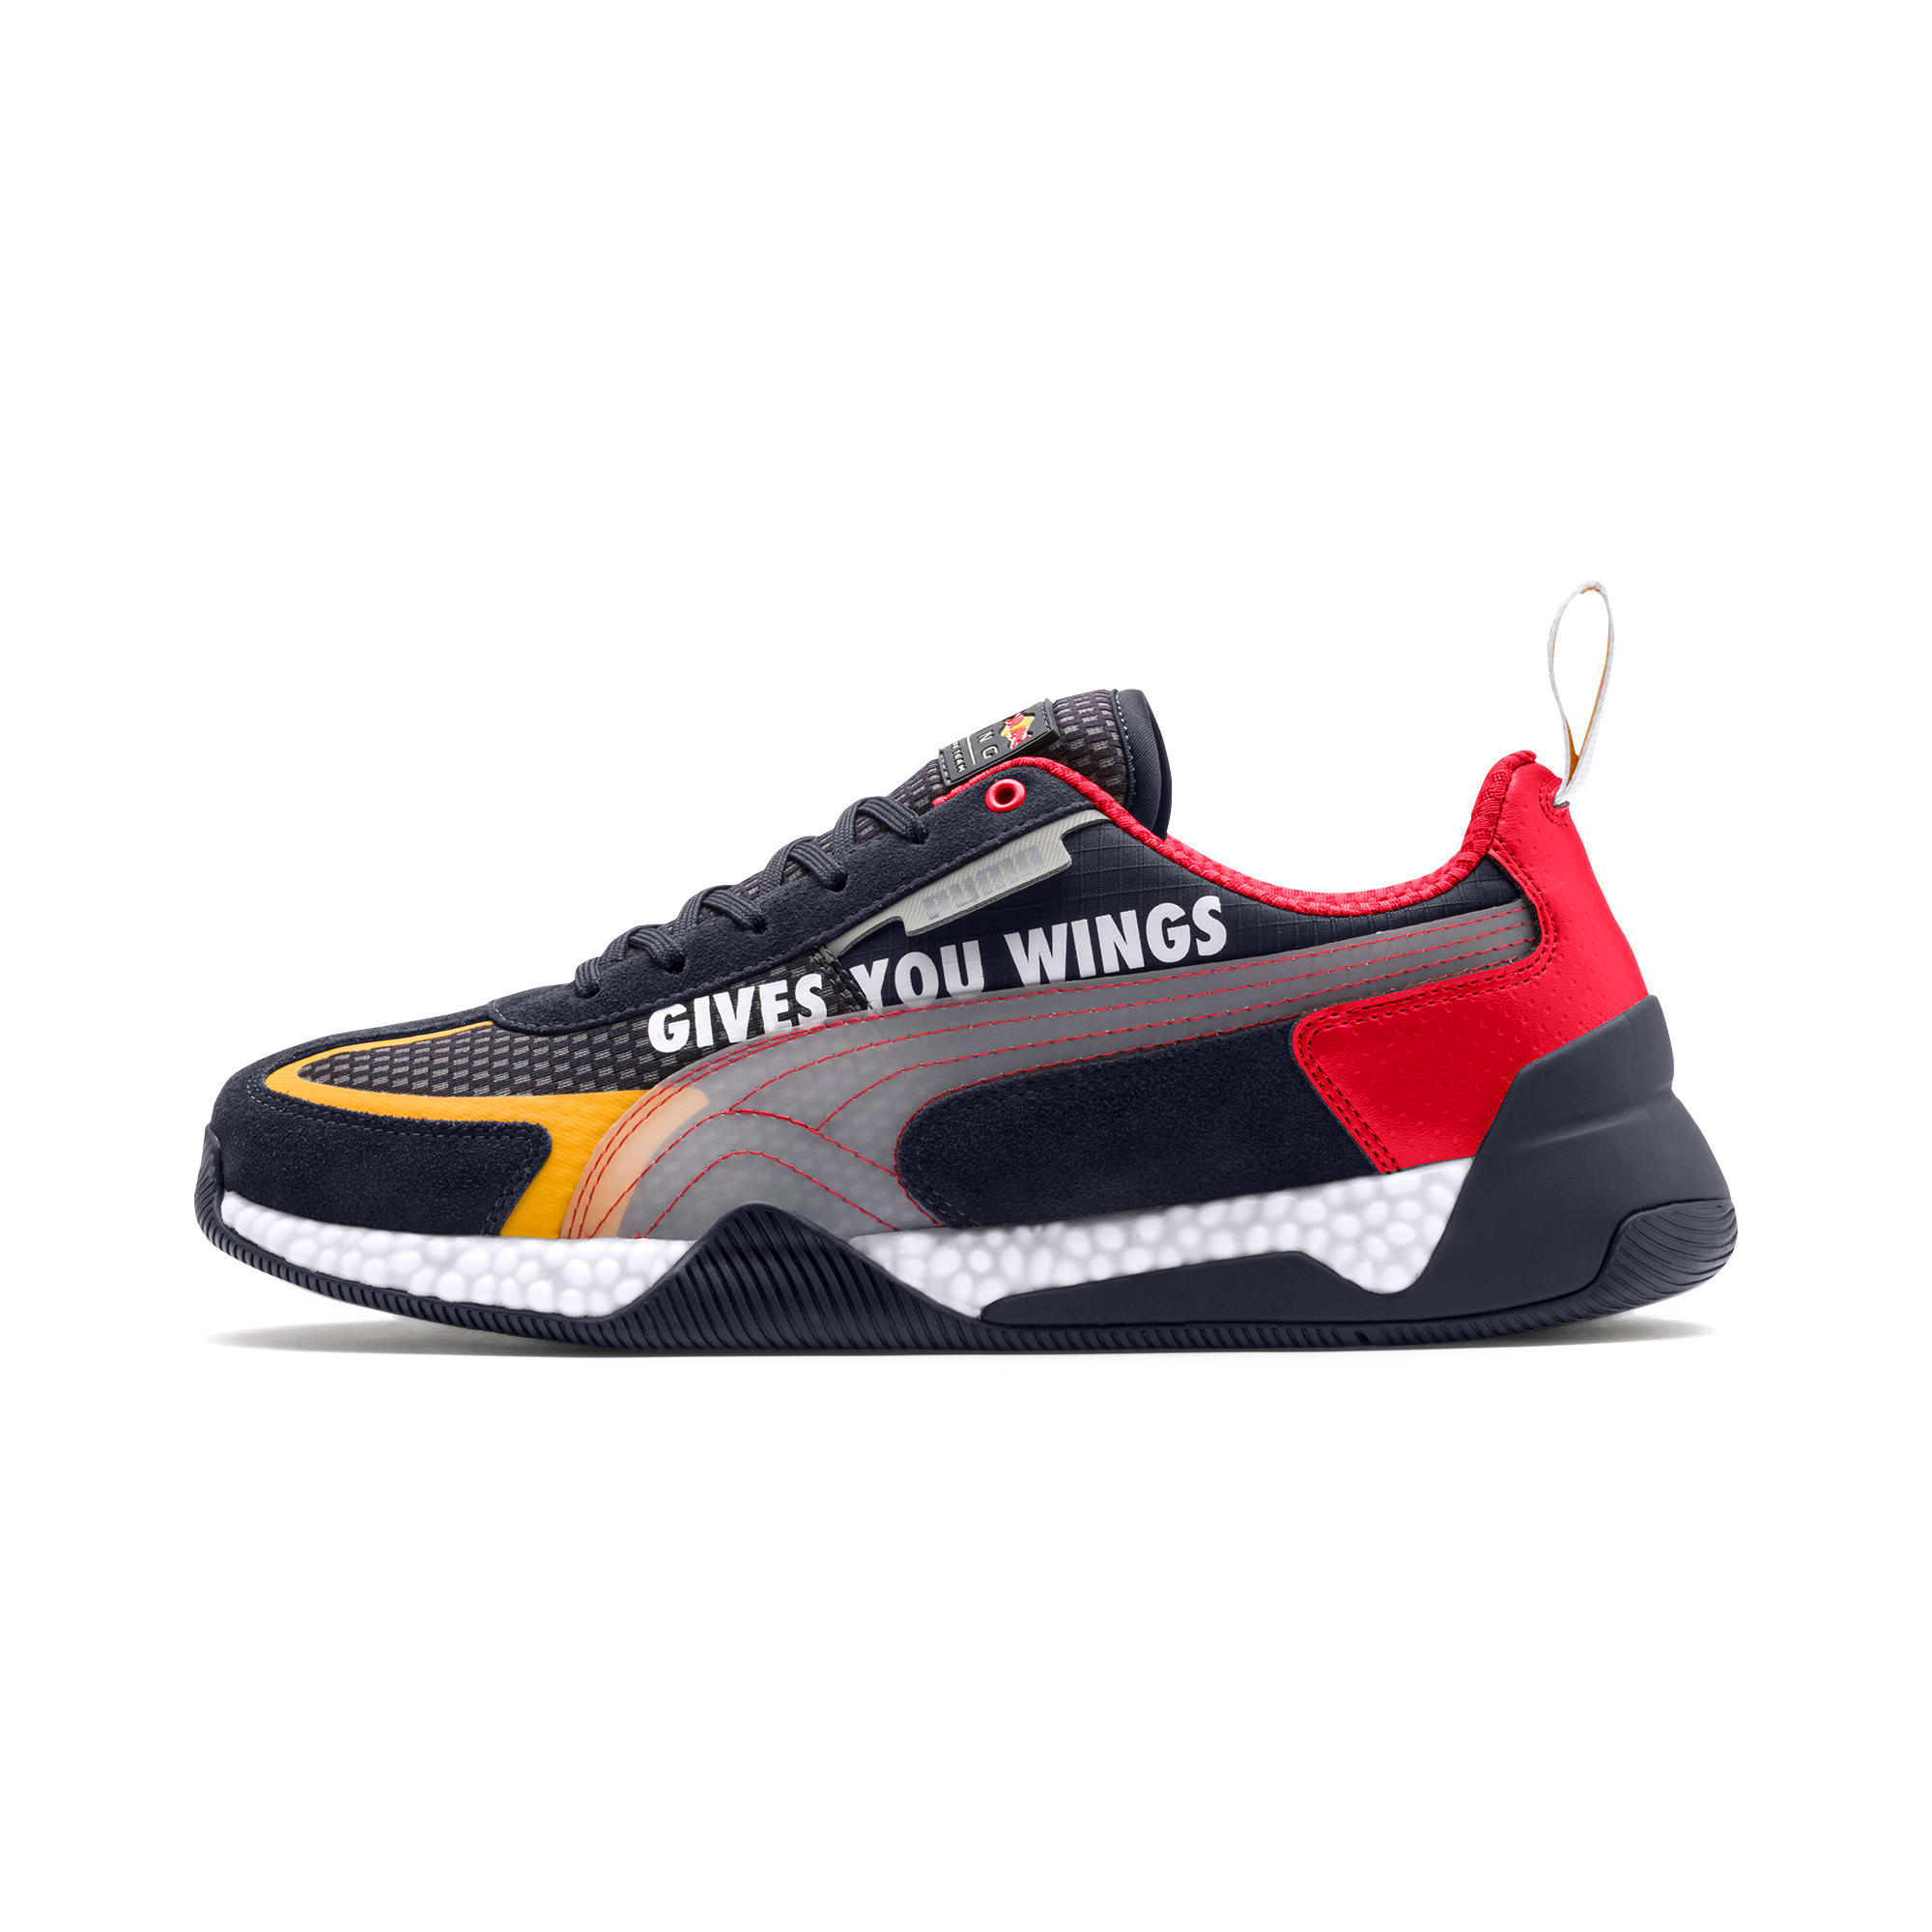 Miniatura 1 de Zapatos para correr Red Bull Racing Speed HYBRID, NIGHT SKY-White-Chinese Red, mediano